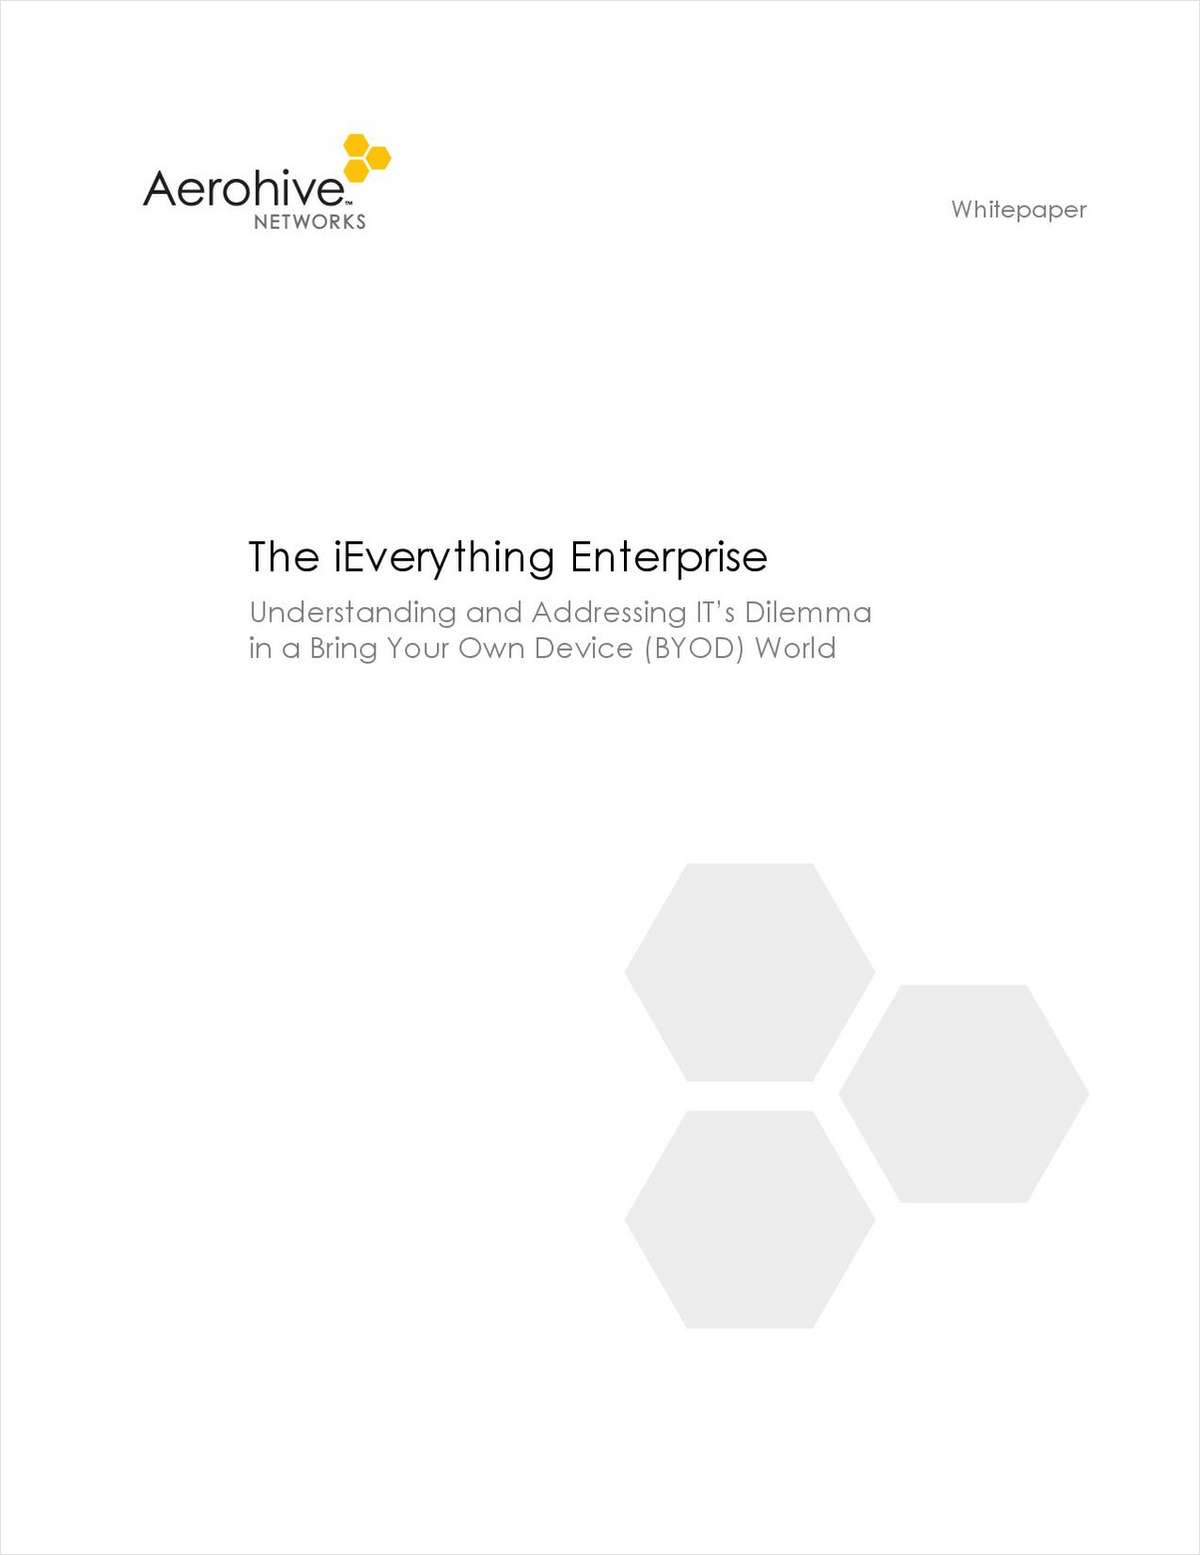 The iEverything Enterprise: Understanding and Addressing IT's Dilemma in a Bring Your Own Device (BYOD) World